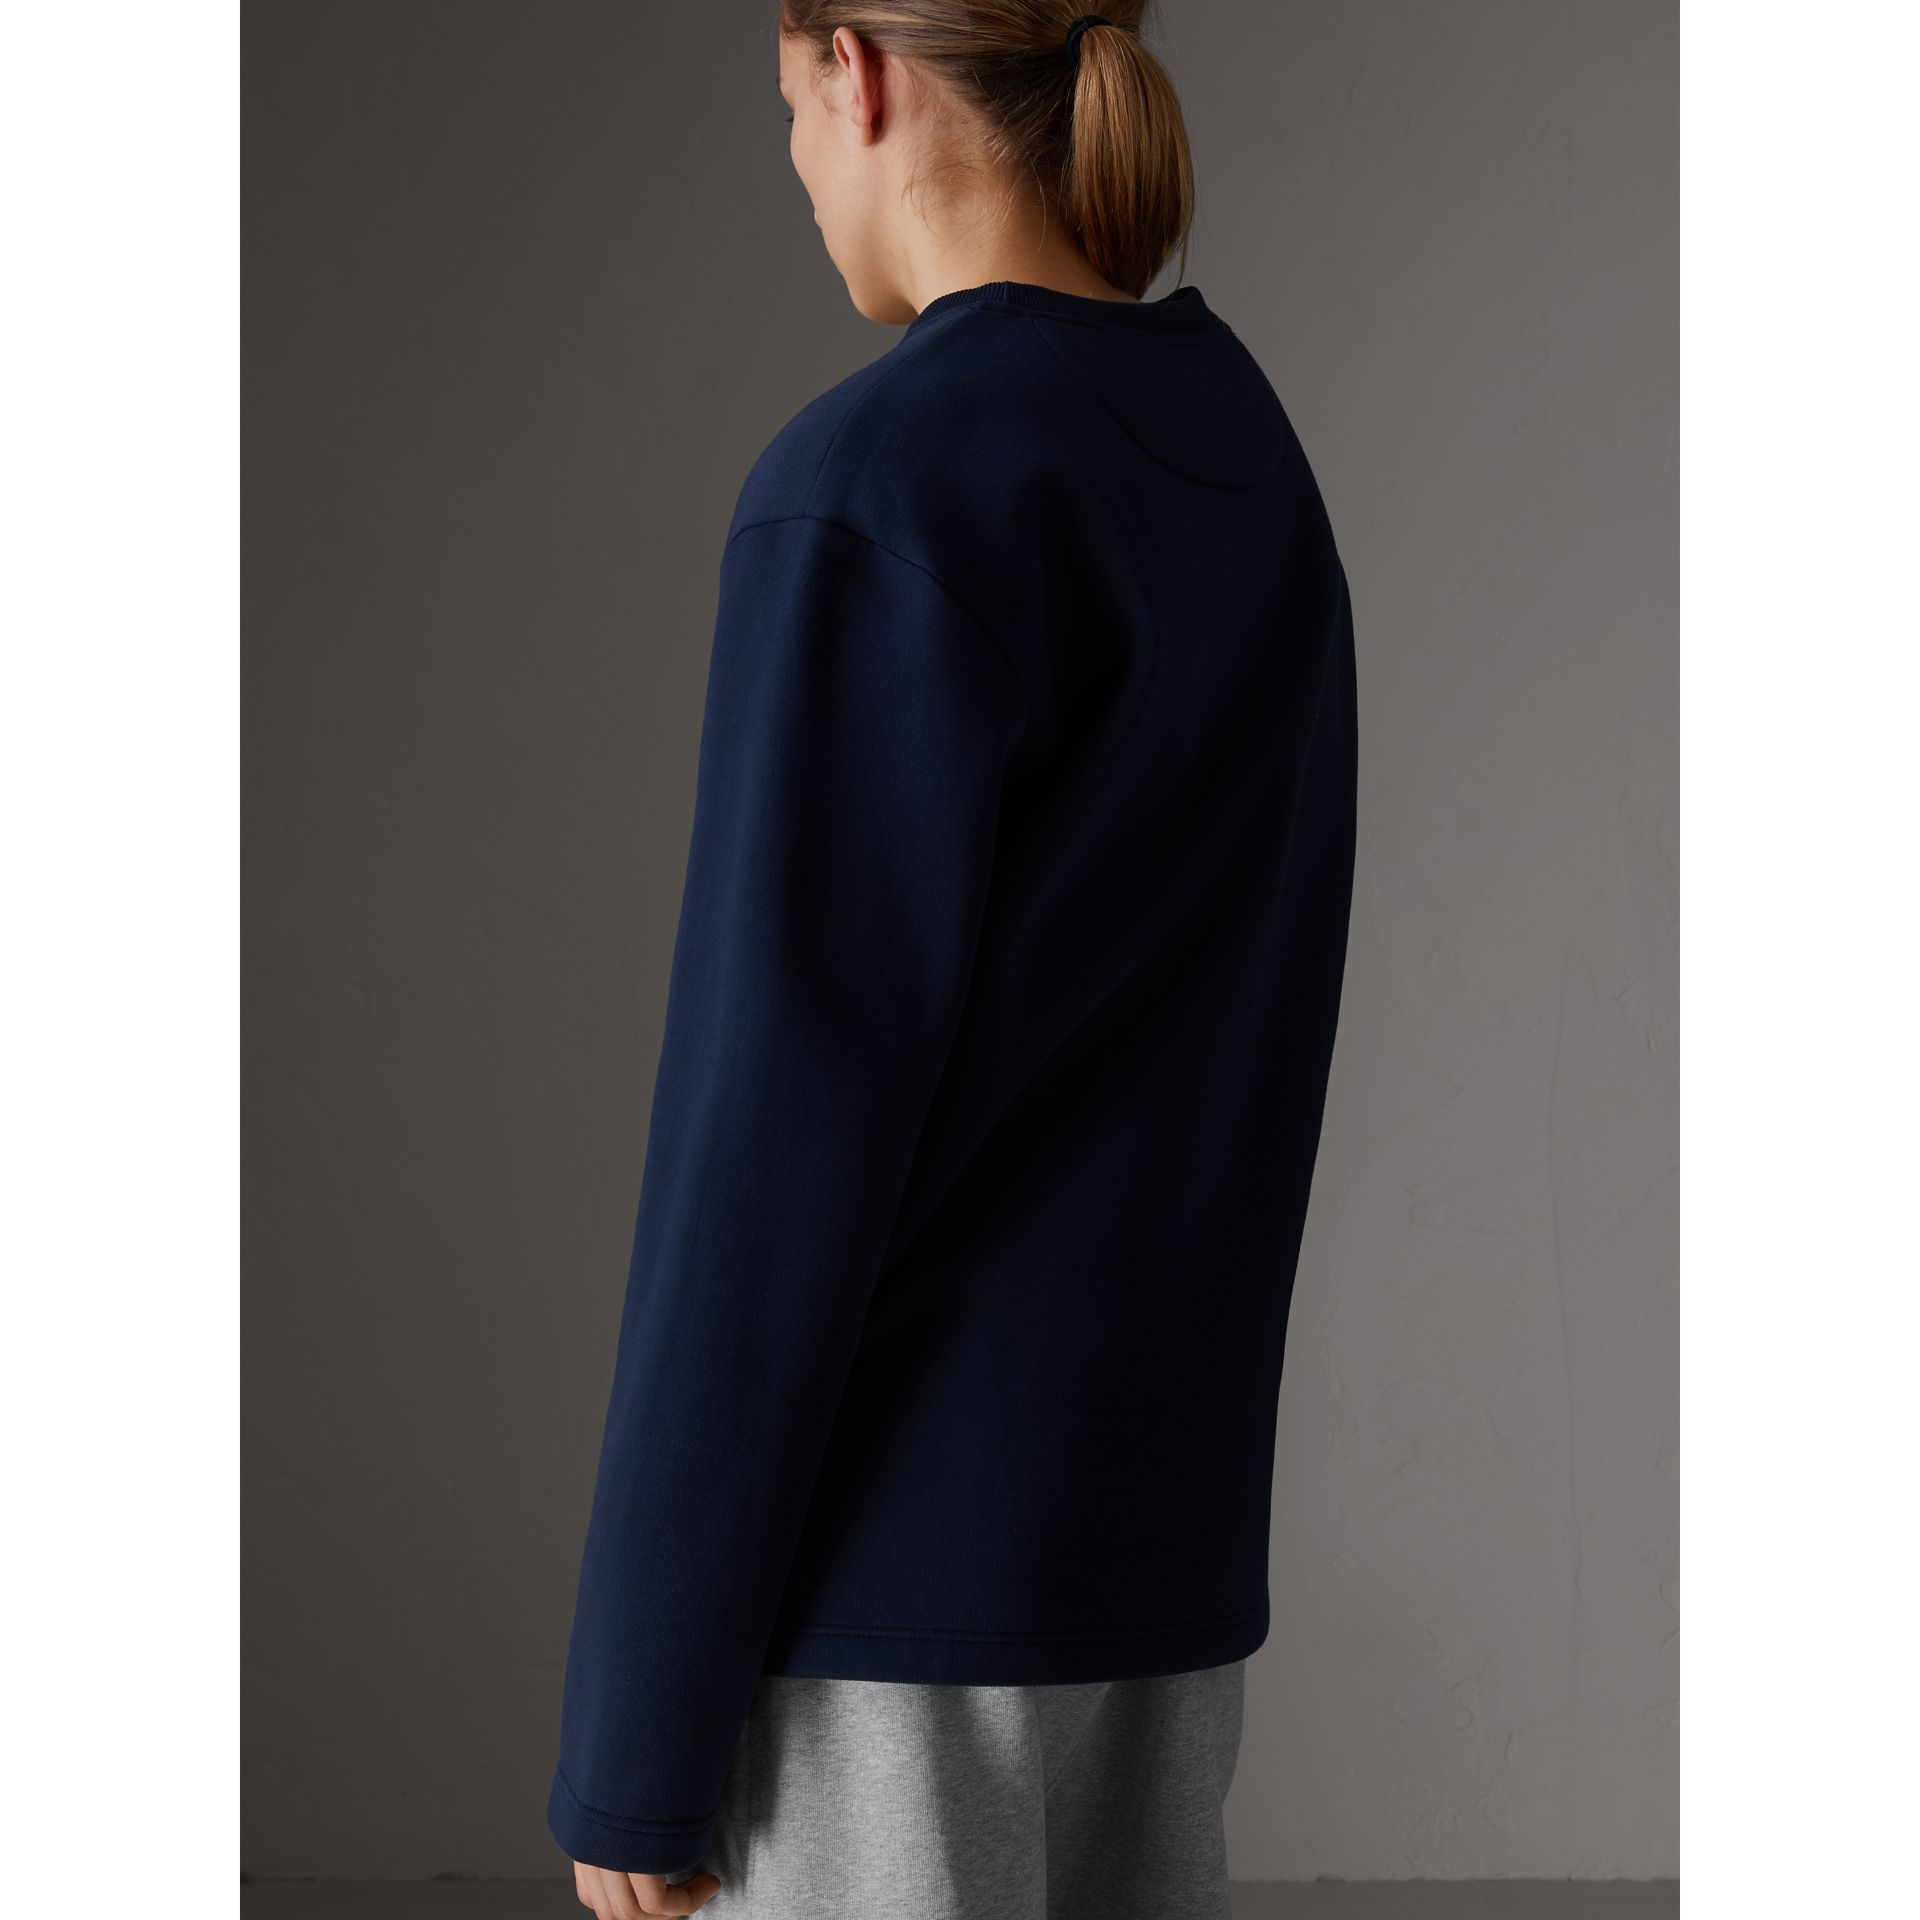 Sweat-shirt en jersey revisité (Bleu Foncé) - Femme | Burberry - photo de la galerie 2